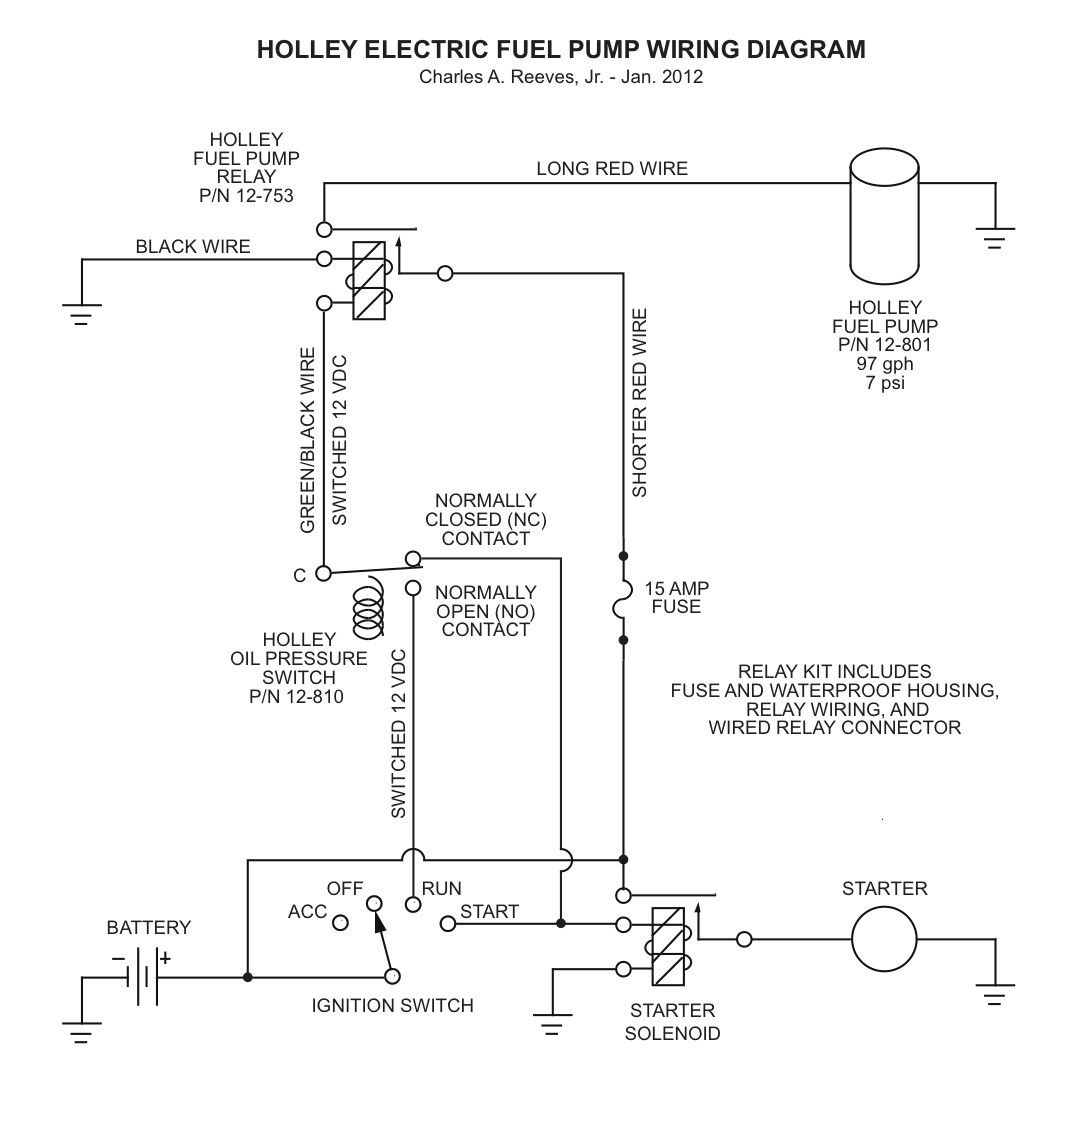 Wiring Diagram As Well Vw Ignition Switch Wiring Diagram On Oil